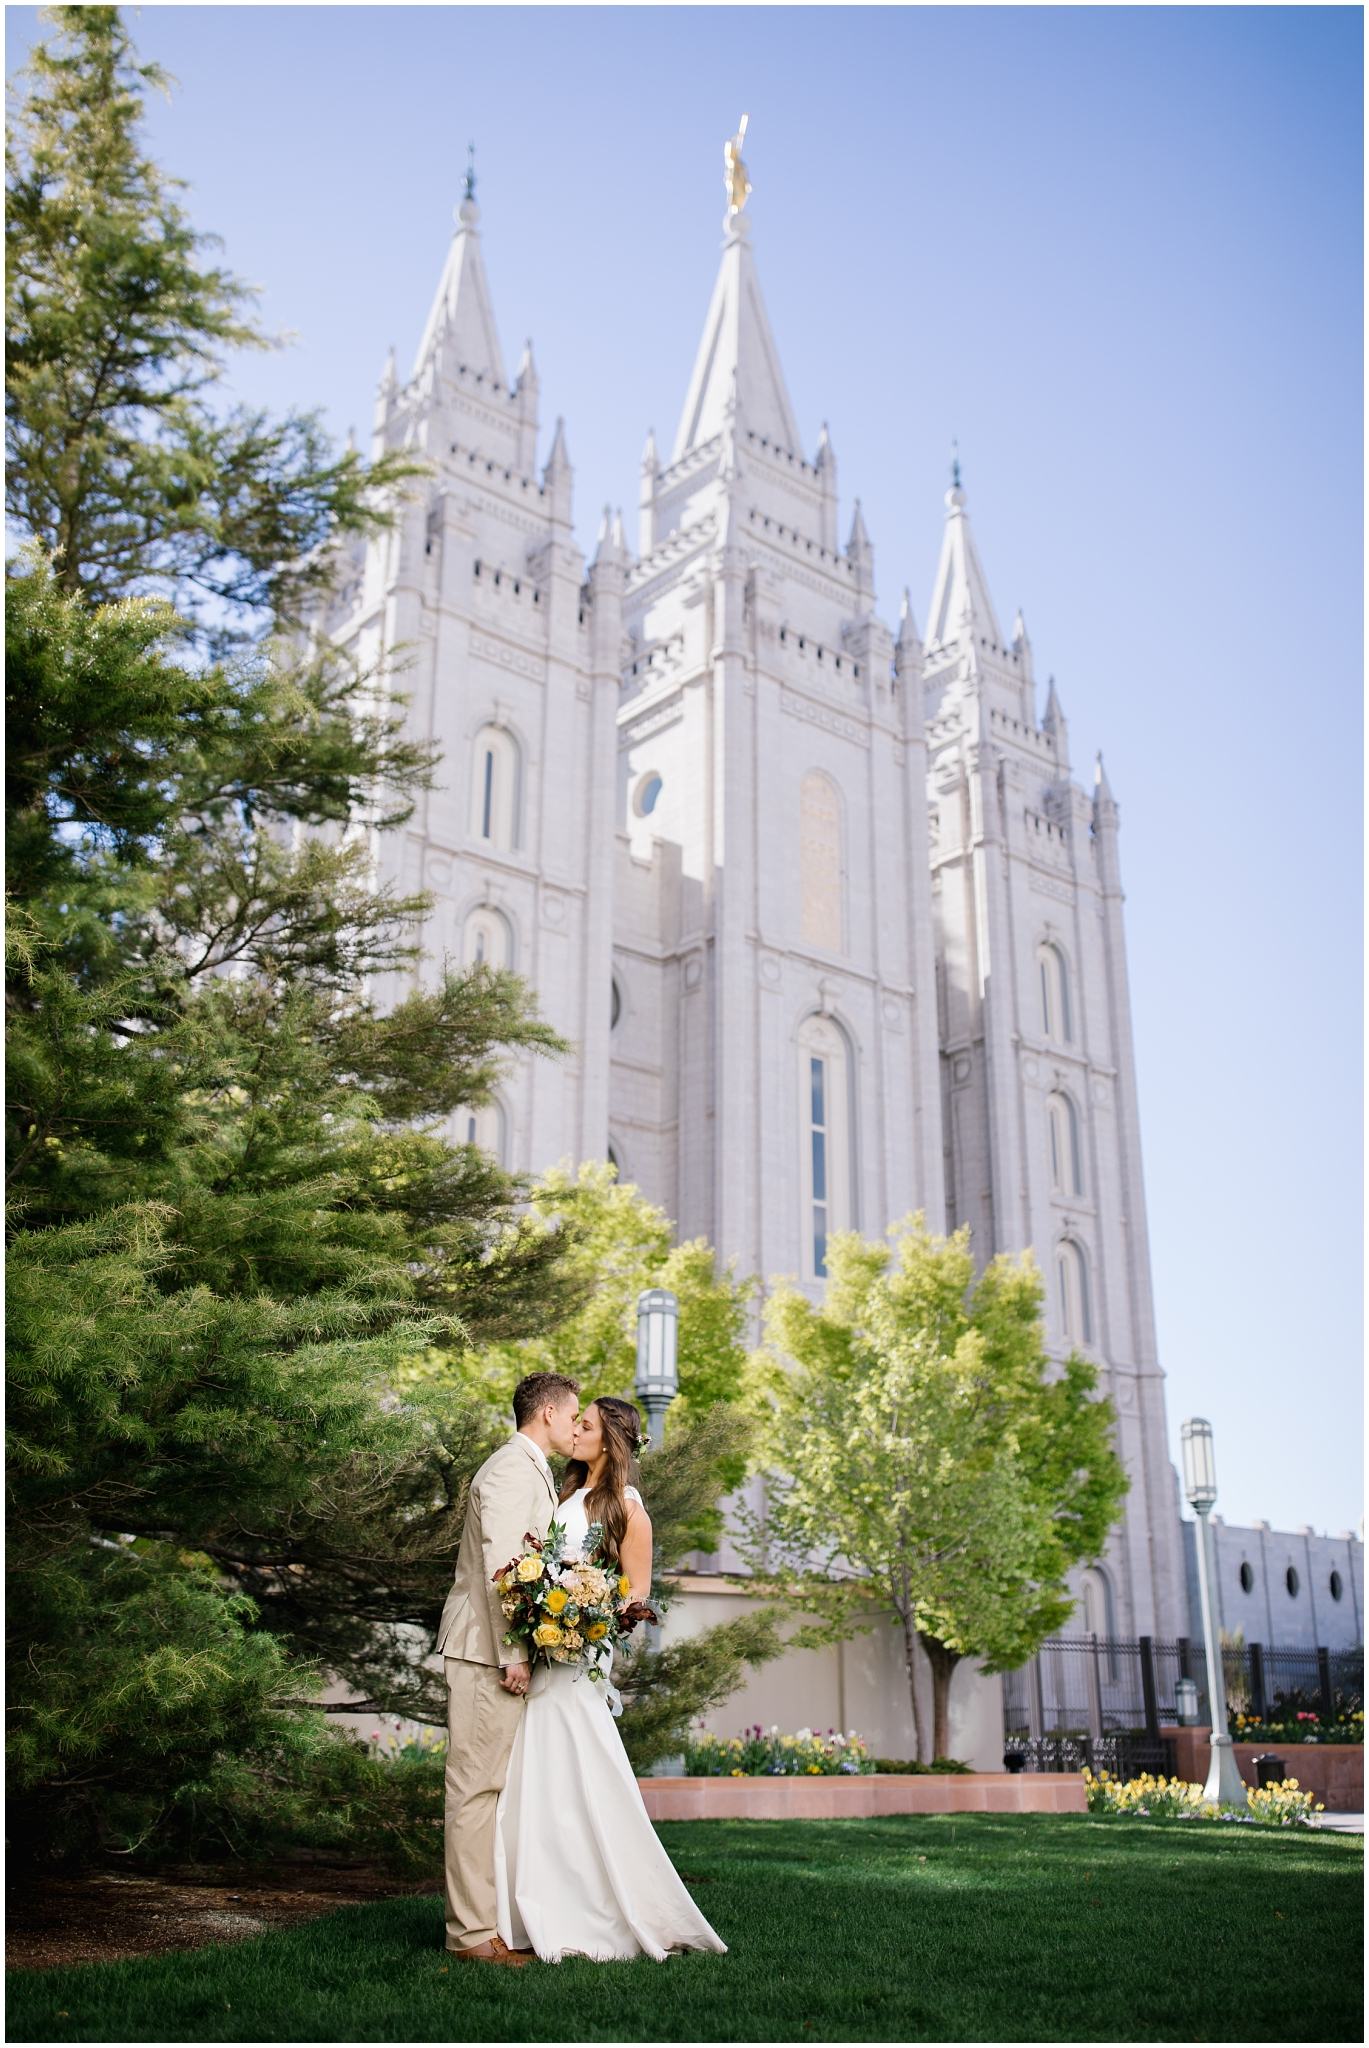 JC-Wedding-203_Lizzie-B-Imagery-Utah-Wedding-Photographer-Park-City-Salt-Lake-City-Temple-Joseph-Smith-Memorial-Building-Empire-Room.jpg